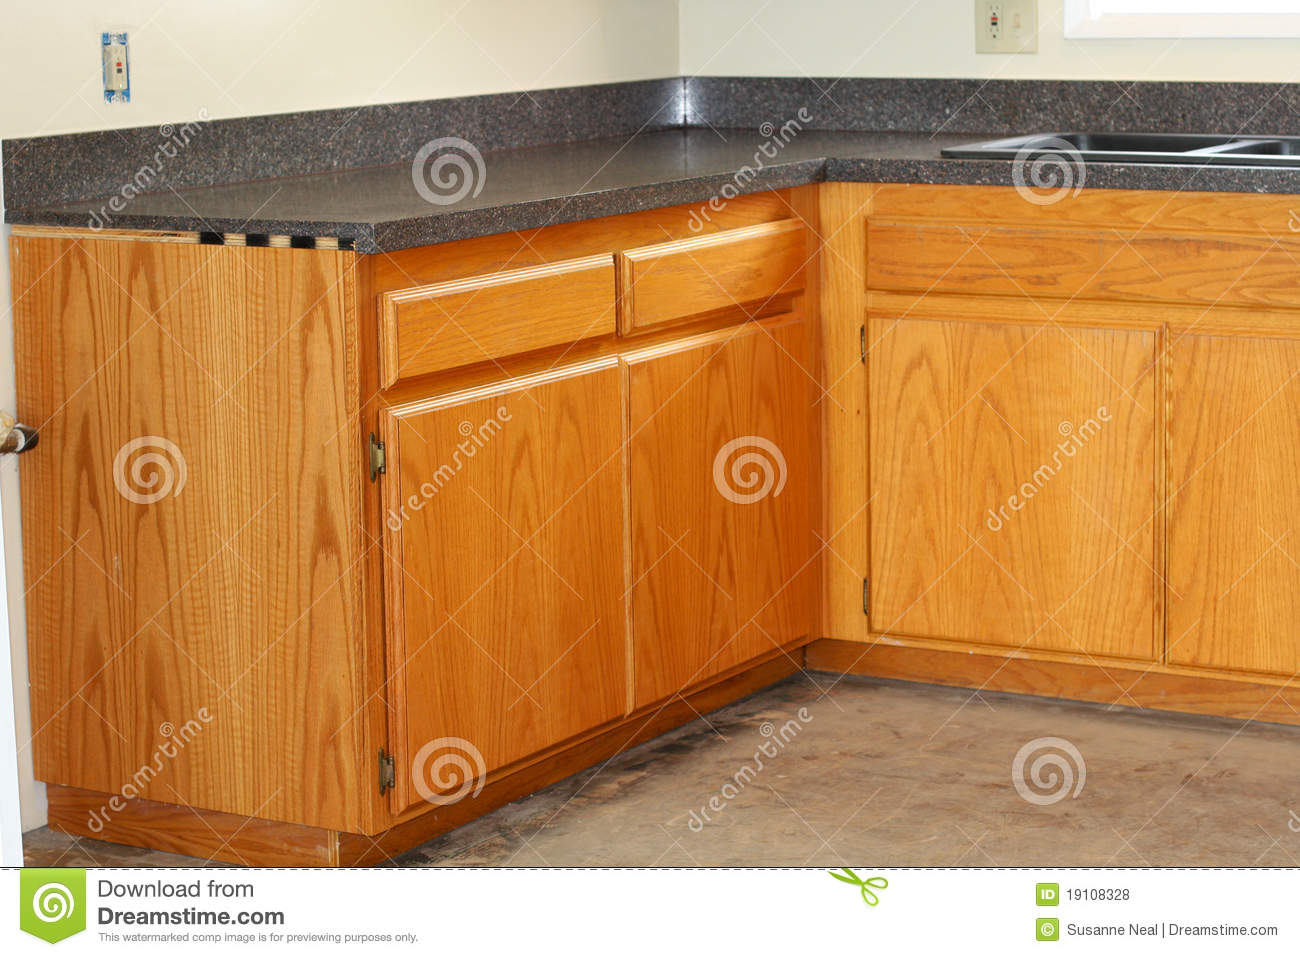 Oak Kitchen Drawers And New Countertop Royalty Free Stock Photos.